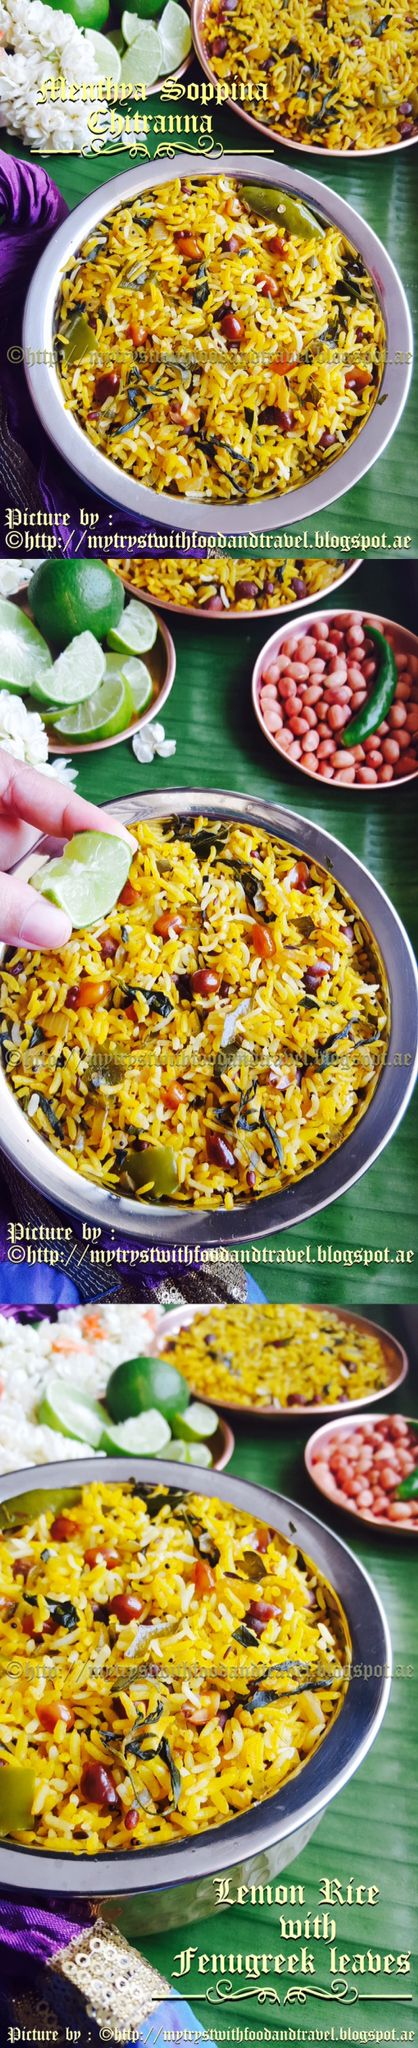 Menthya Soppina Chitranna or Lemon Rice with fresh Fenugreek Leaves is another dish which I will make as a part of the Ugadi celebrations. This is a very simple, one pot, rice dish which gets its sunshine golden colour from tumeric. Made in very little time the wonderful crunch from the peanuts and lentils with an added aroma from the fresh fenugreek leaves used, makes this a very tasty dish. Recipe at…